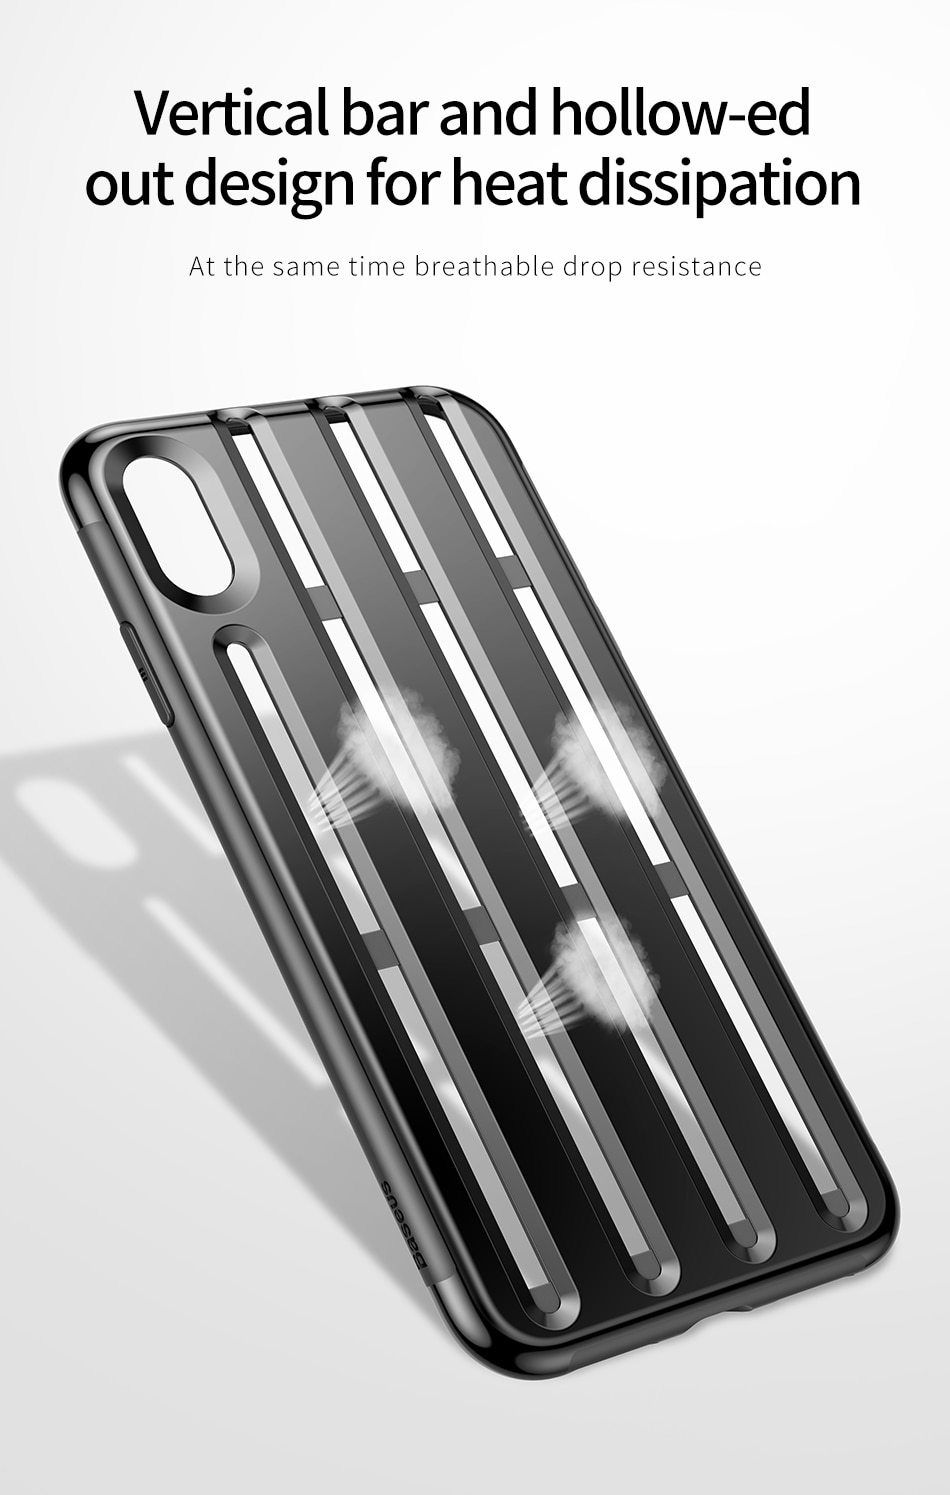 Rugged Ventilated Hybrid Protective Armor Case For iPhone